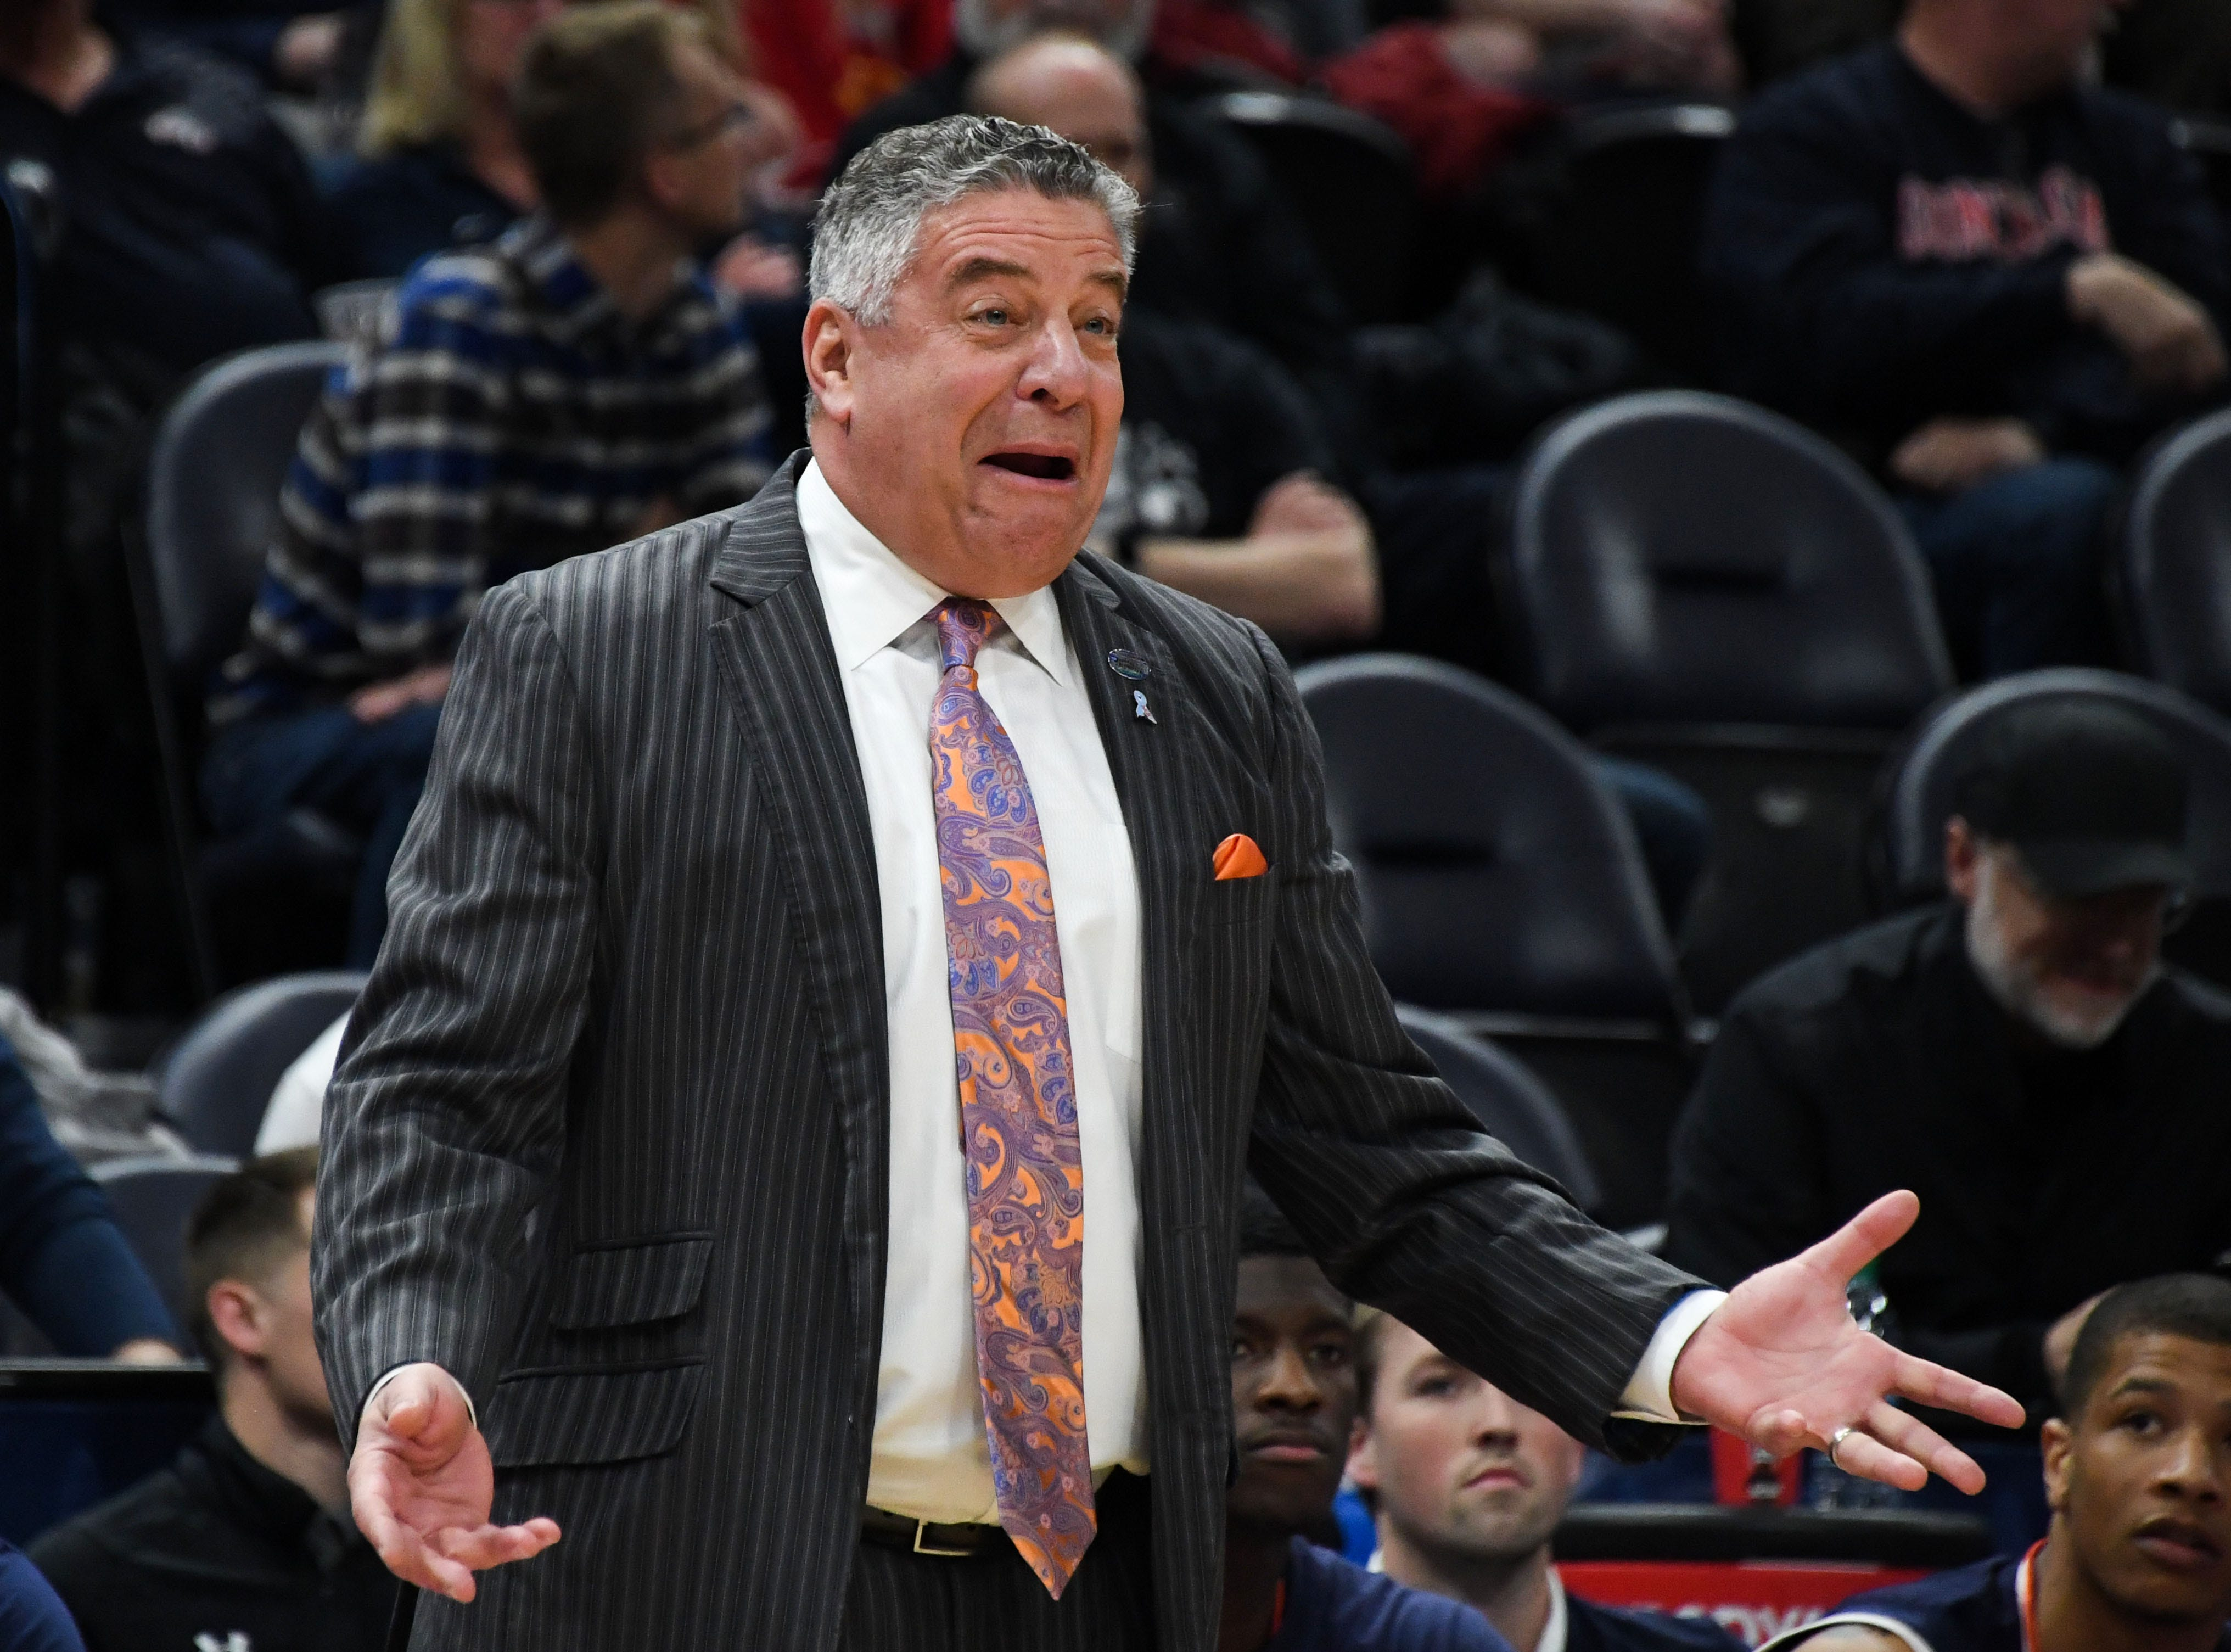 Mar 23, 2019; Salt Lake City, UT, USA; Auburn Tigers head coach Bruce Pearl reacts during the first half in the second round of the 2019 NCAA Tournament against the Kansas Jayhawks at Vivint Smart Home Arena. Mandatory Credit: Kirby Lee-USA TODAY Sports